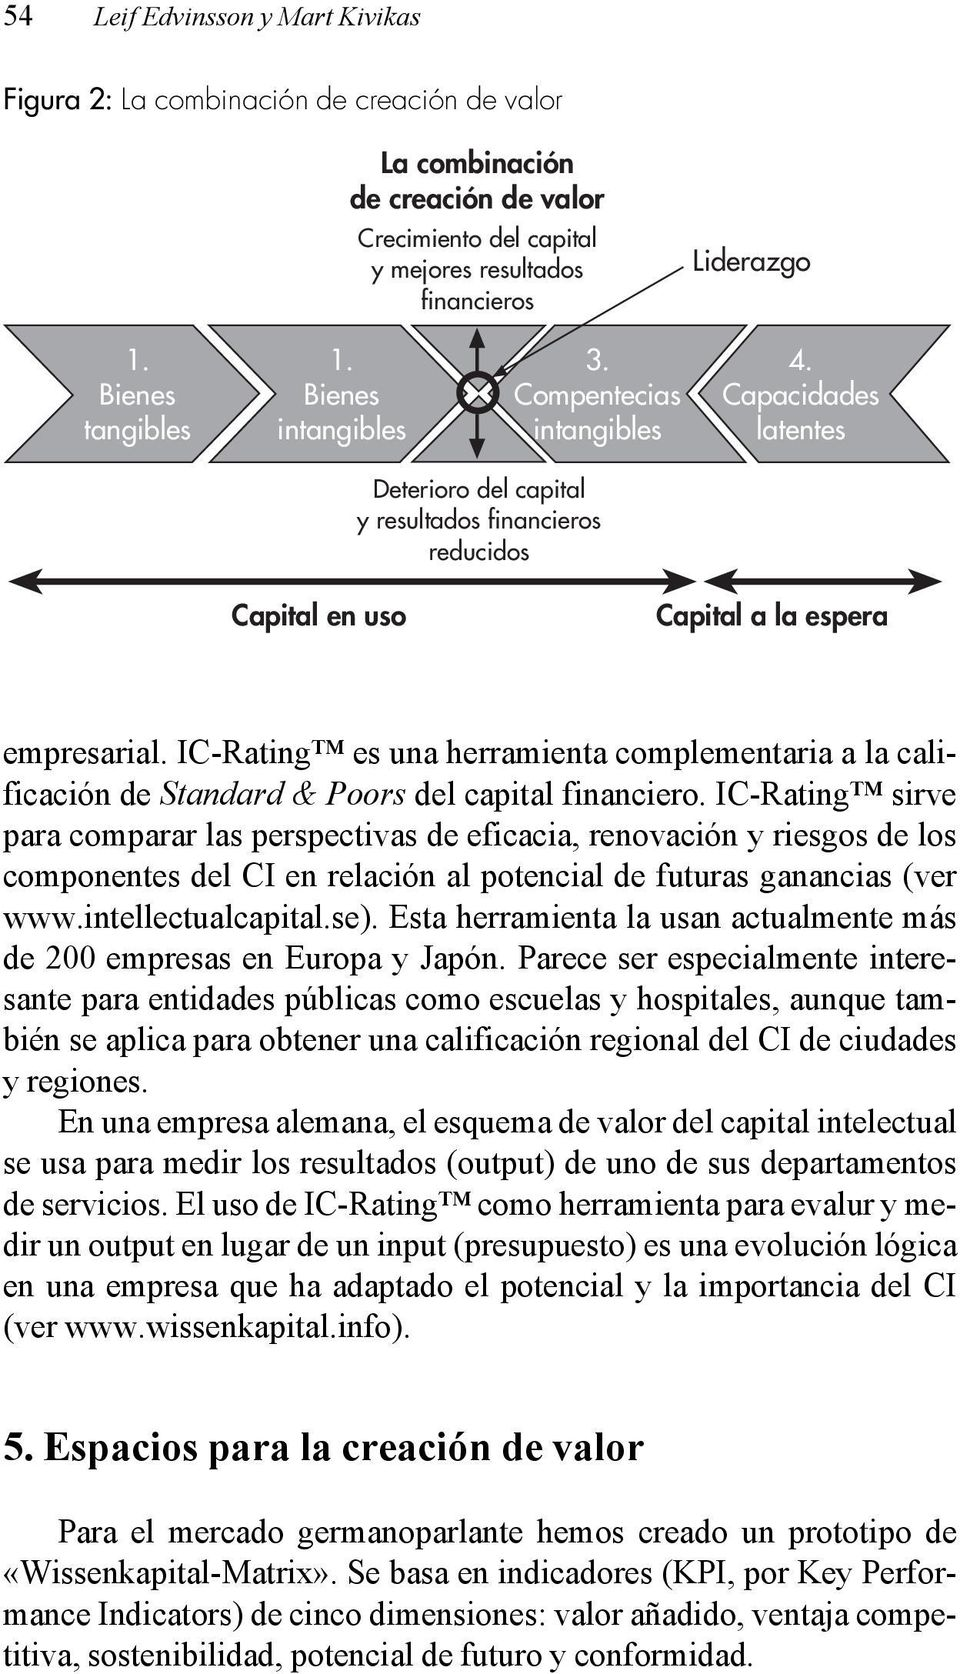 IC-Rating es una herramienta complementaria a la calificación de Standard & Poors del capital financiero.